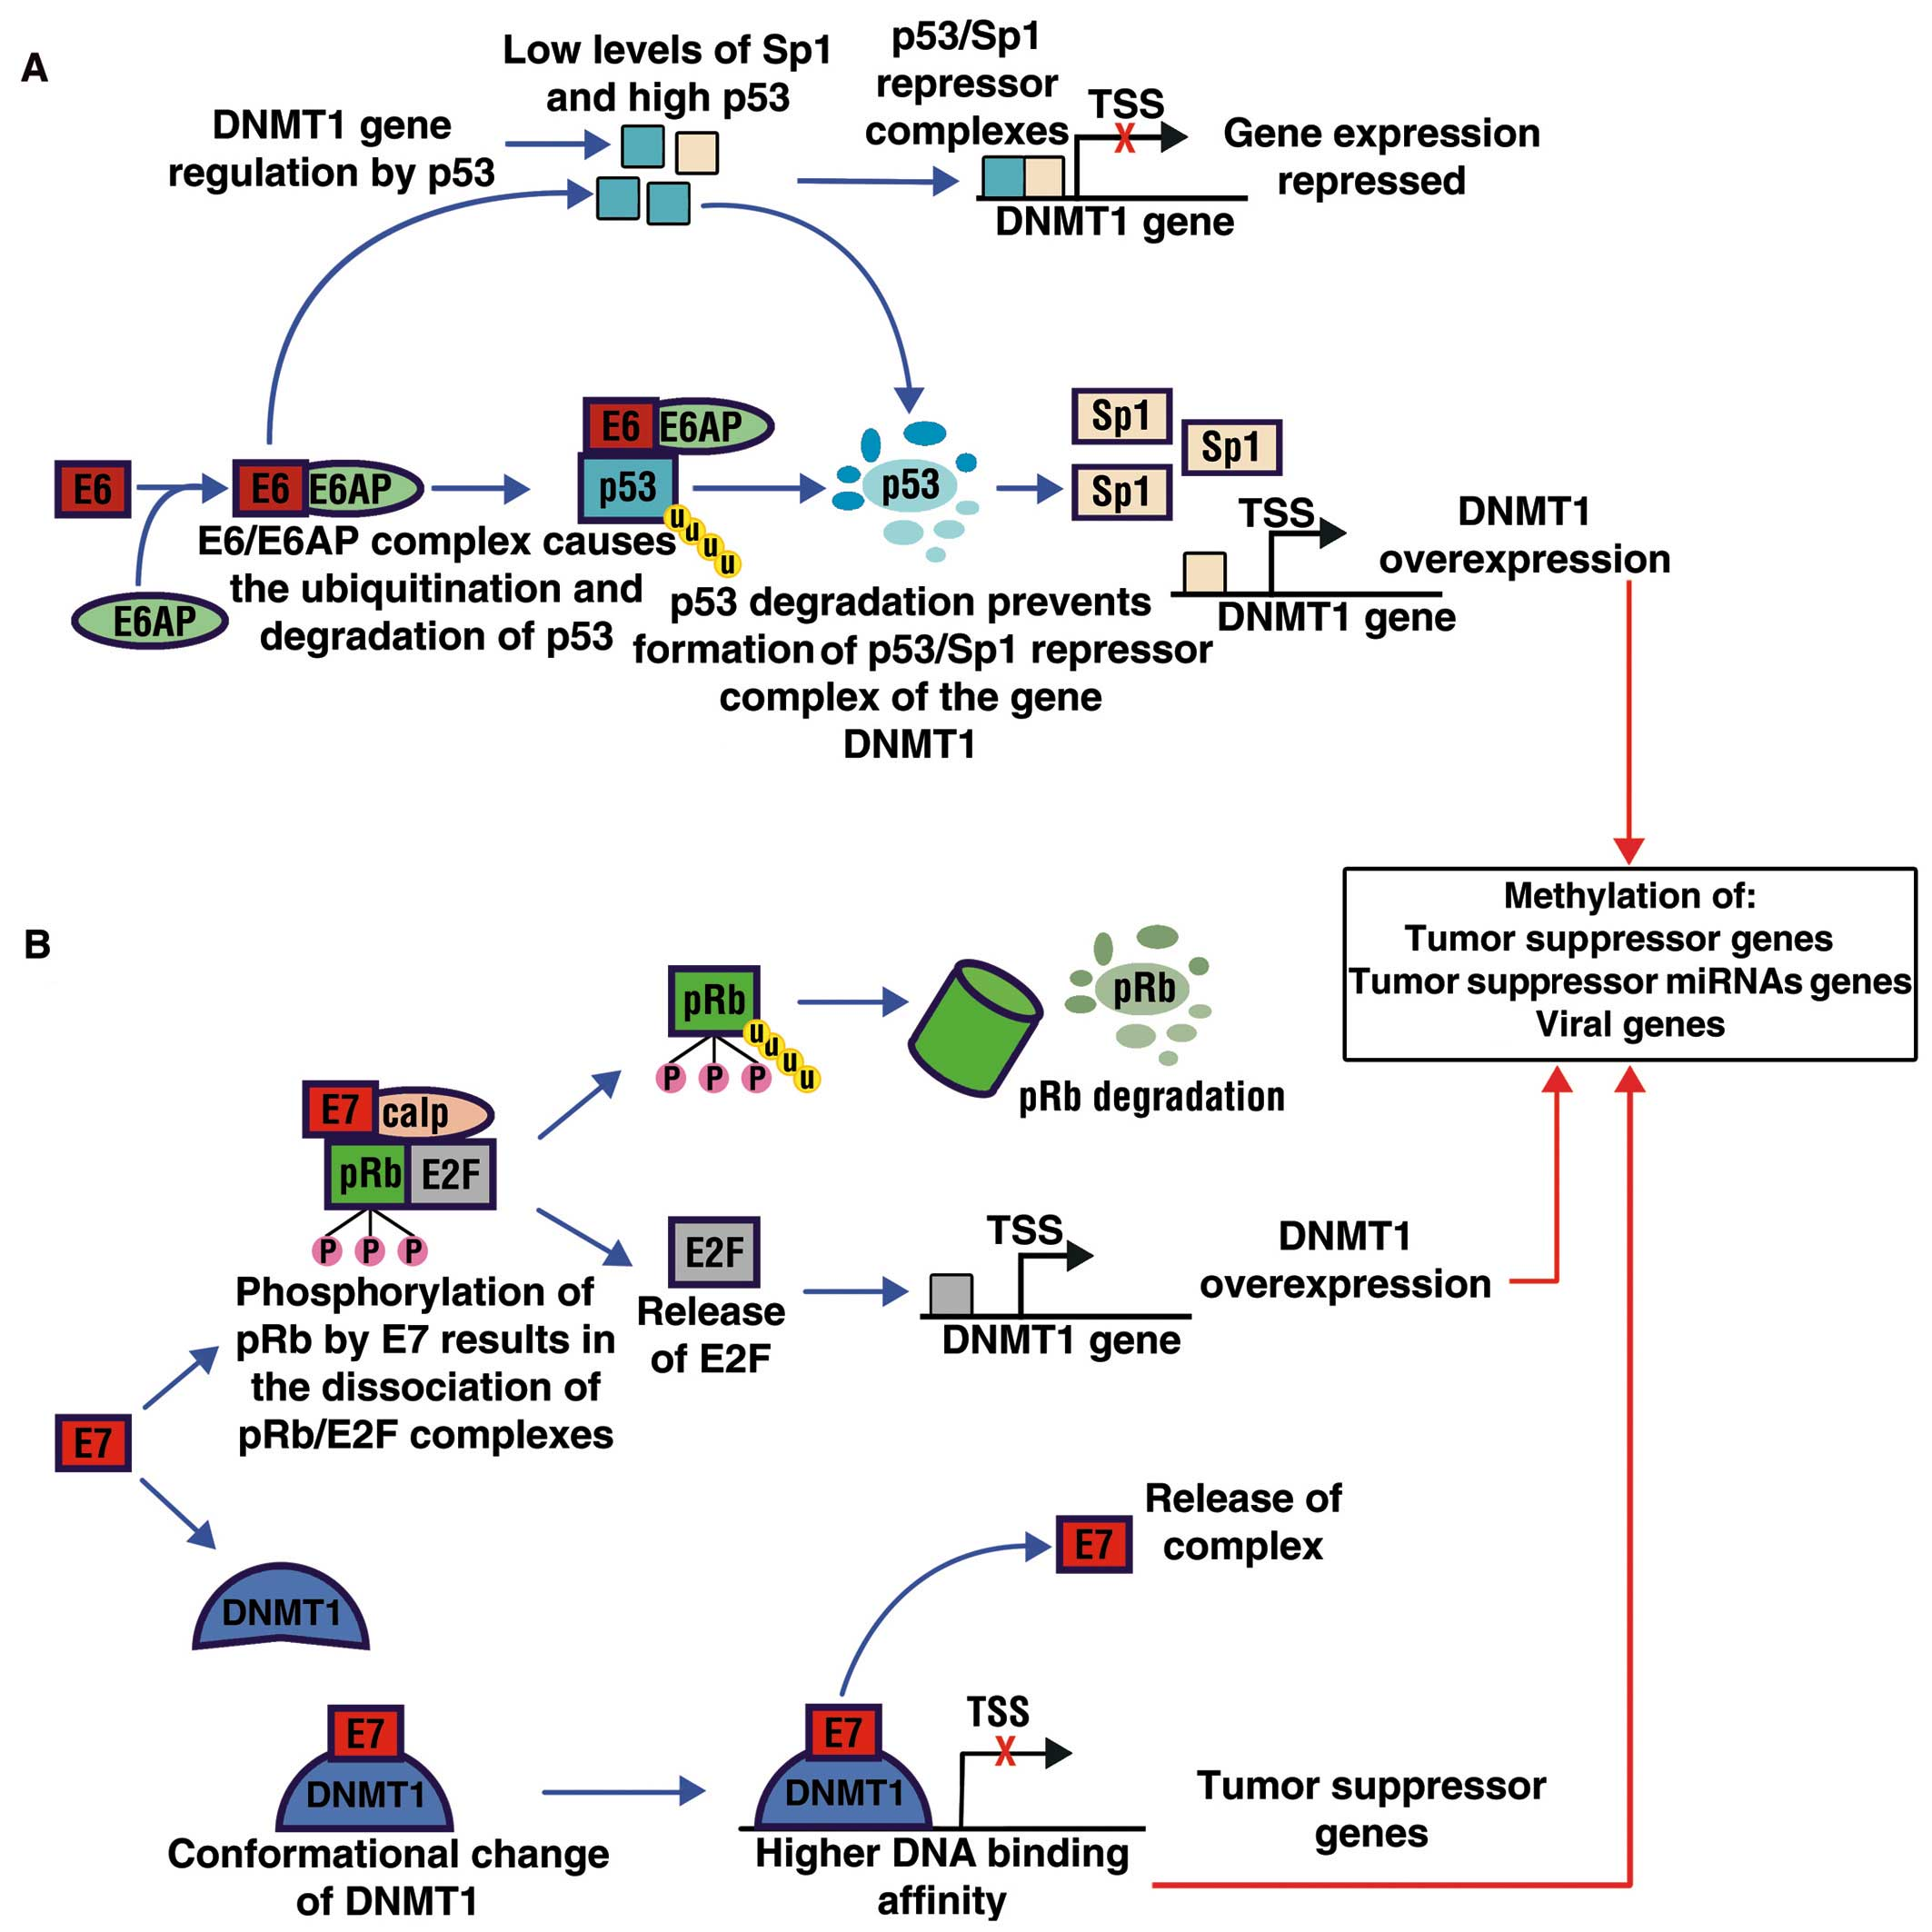 human papillomavirus type 16 and 18 gene expression in cervical neoplasias